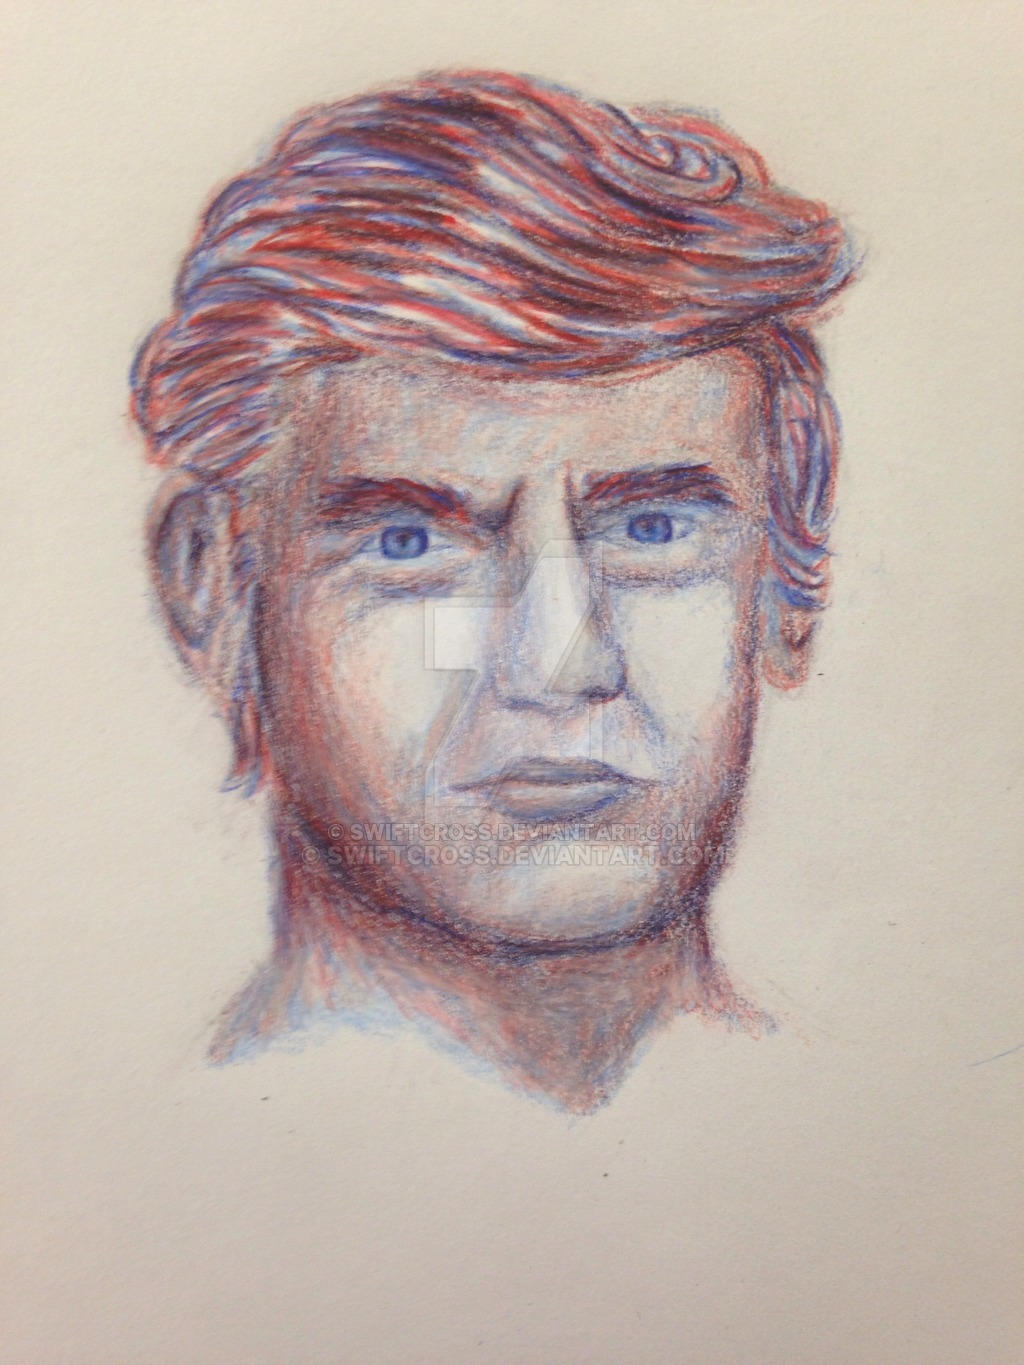 Donald Trump by swiftcross